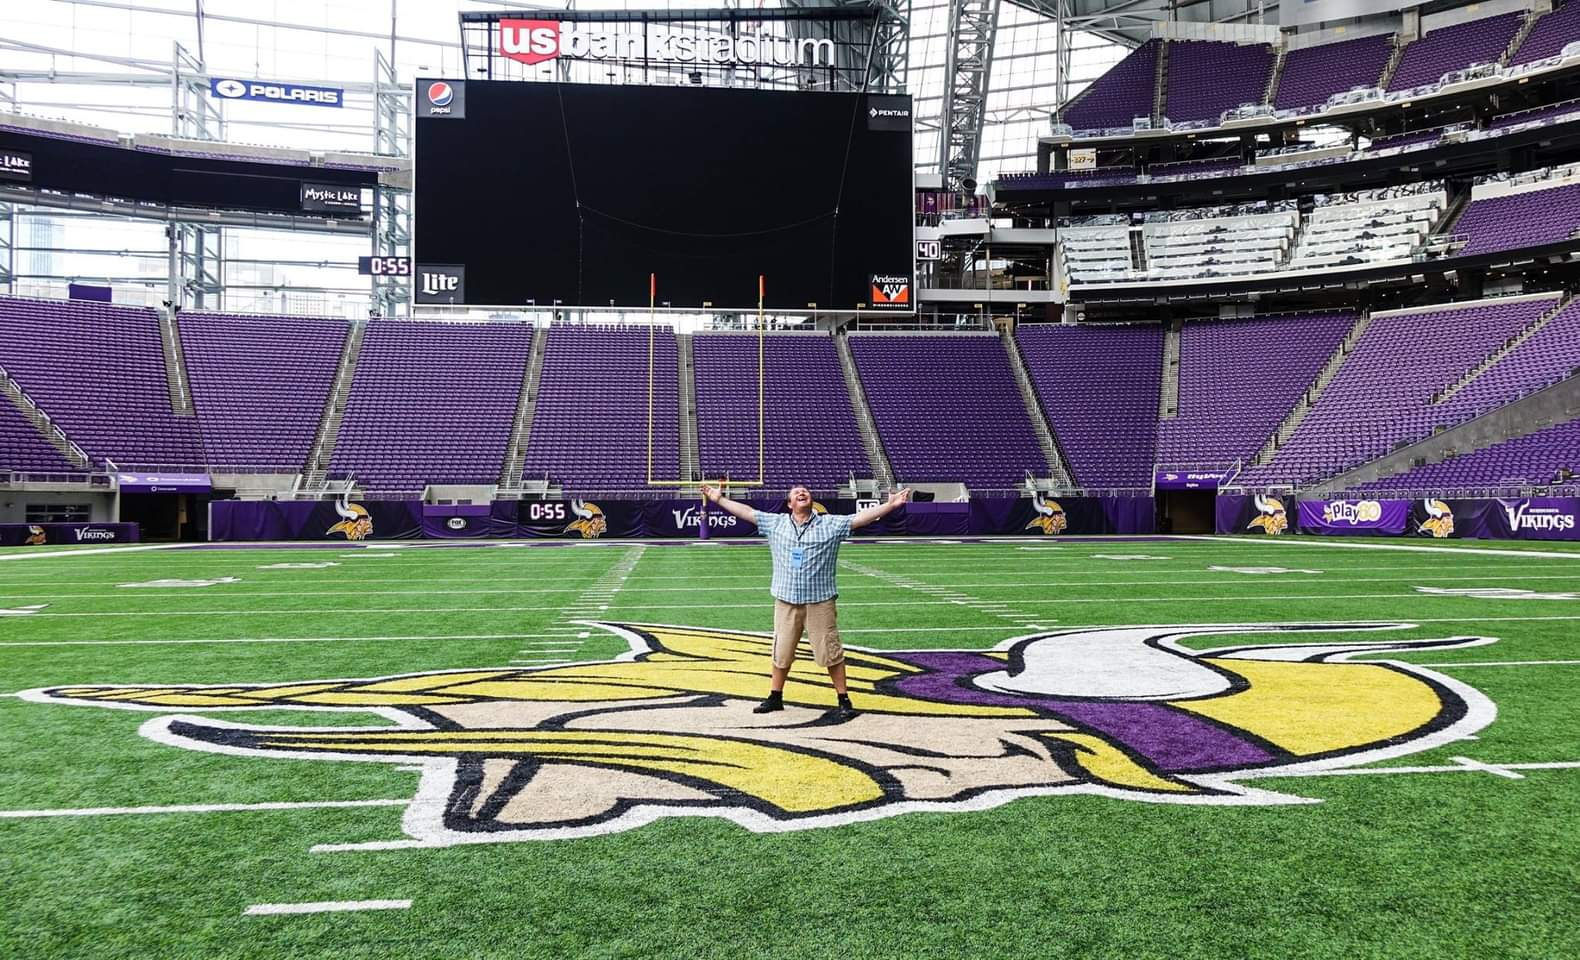 Minneapolis, USA. Stood right in the middle of the 50 yard line at the US Bank Stadium